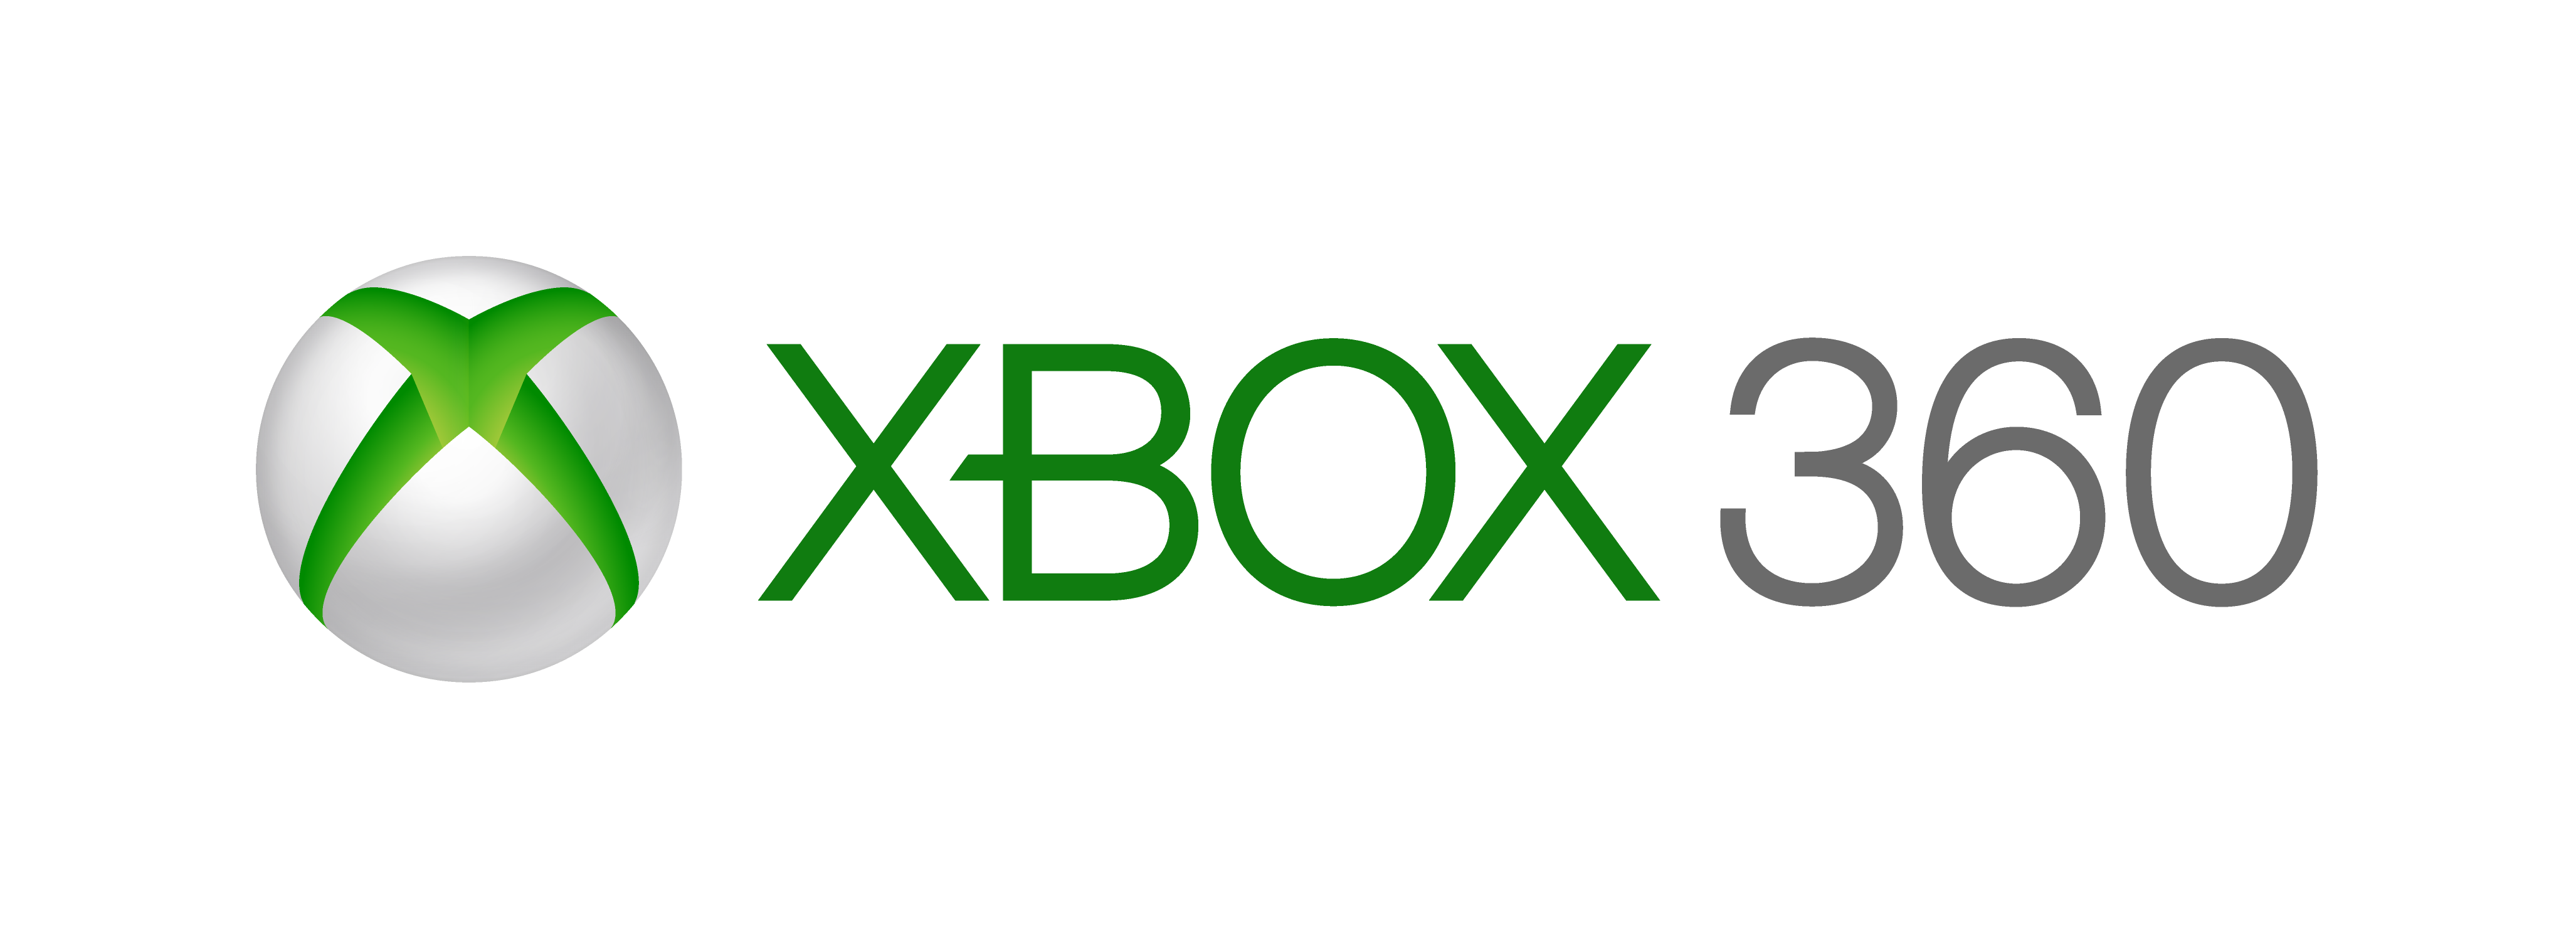 xbox logo png transparent #2491